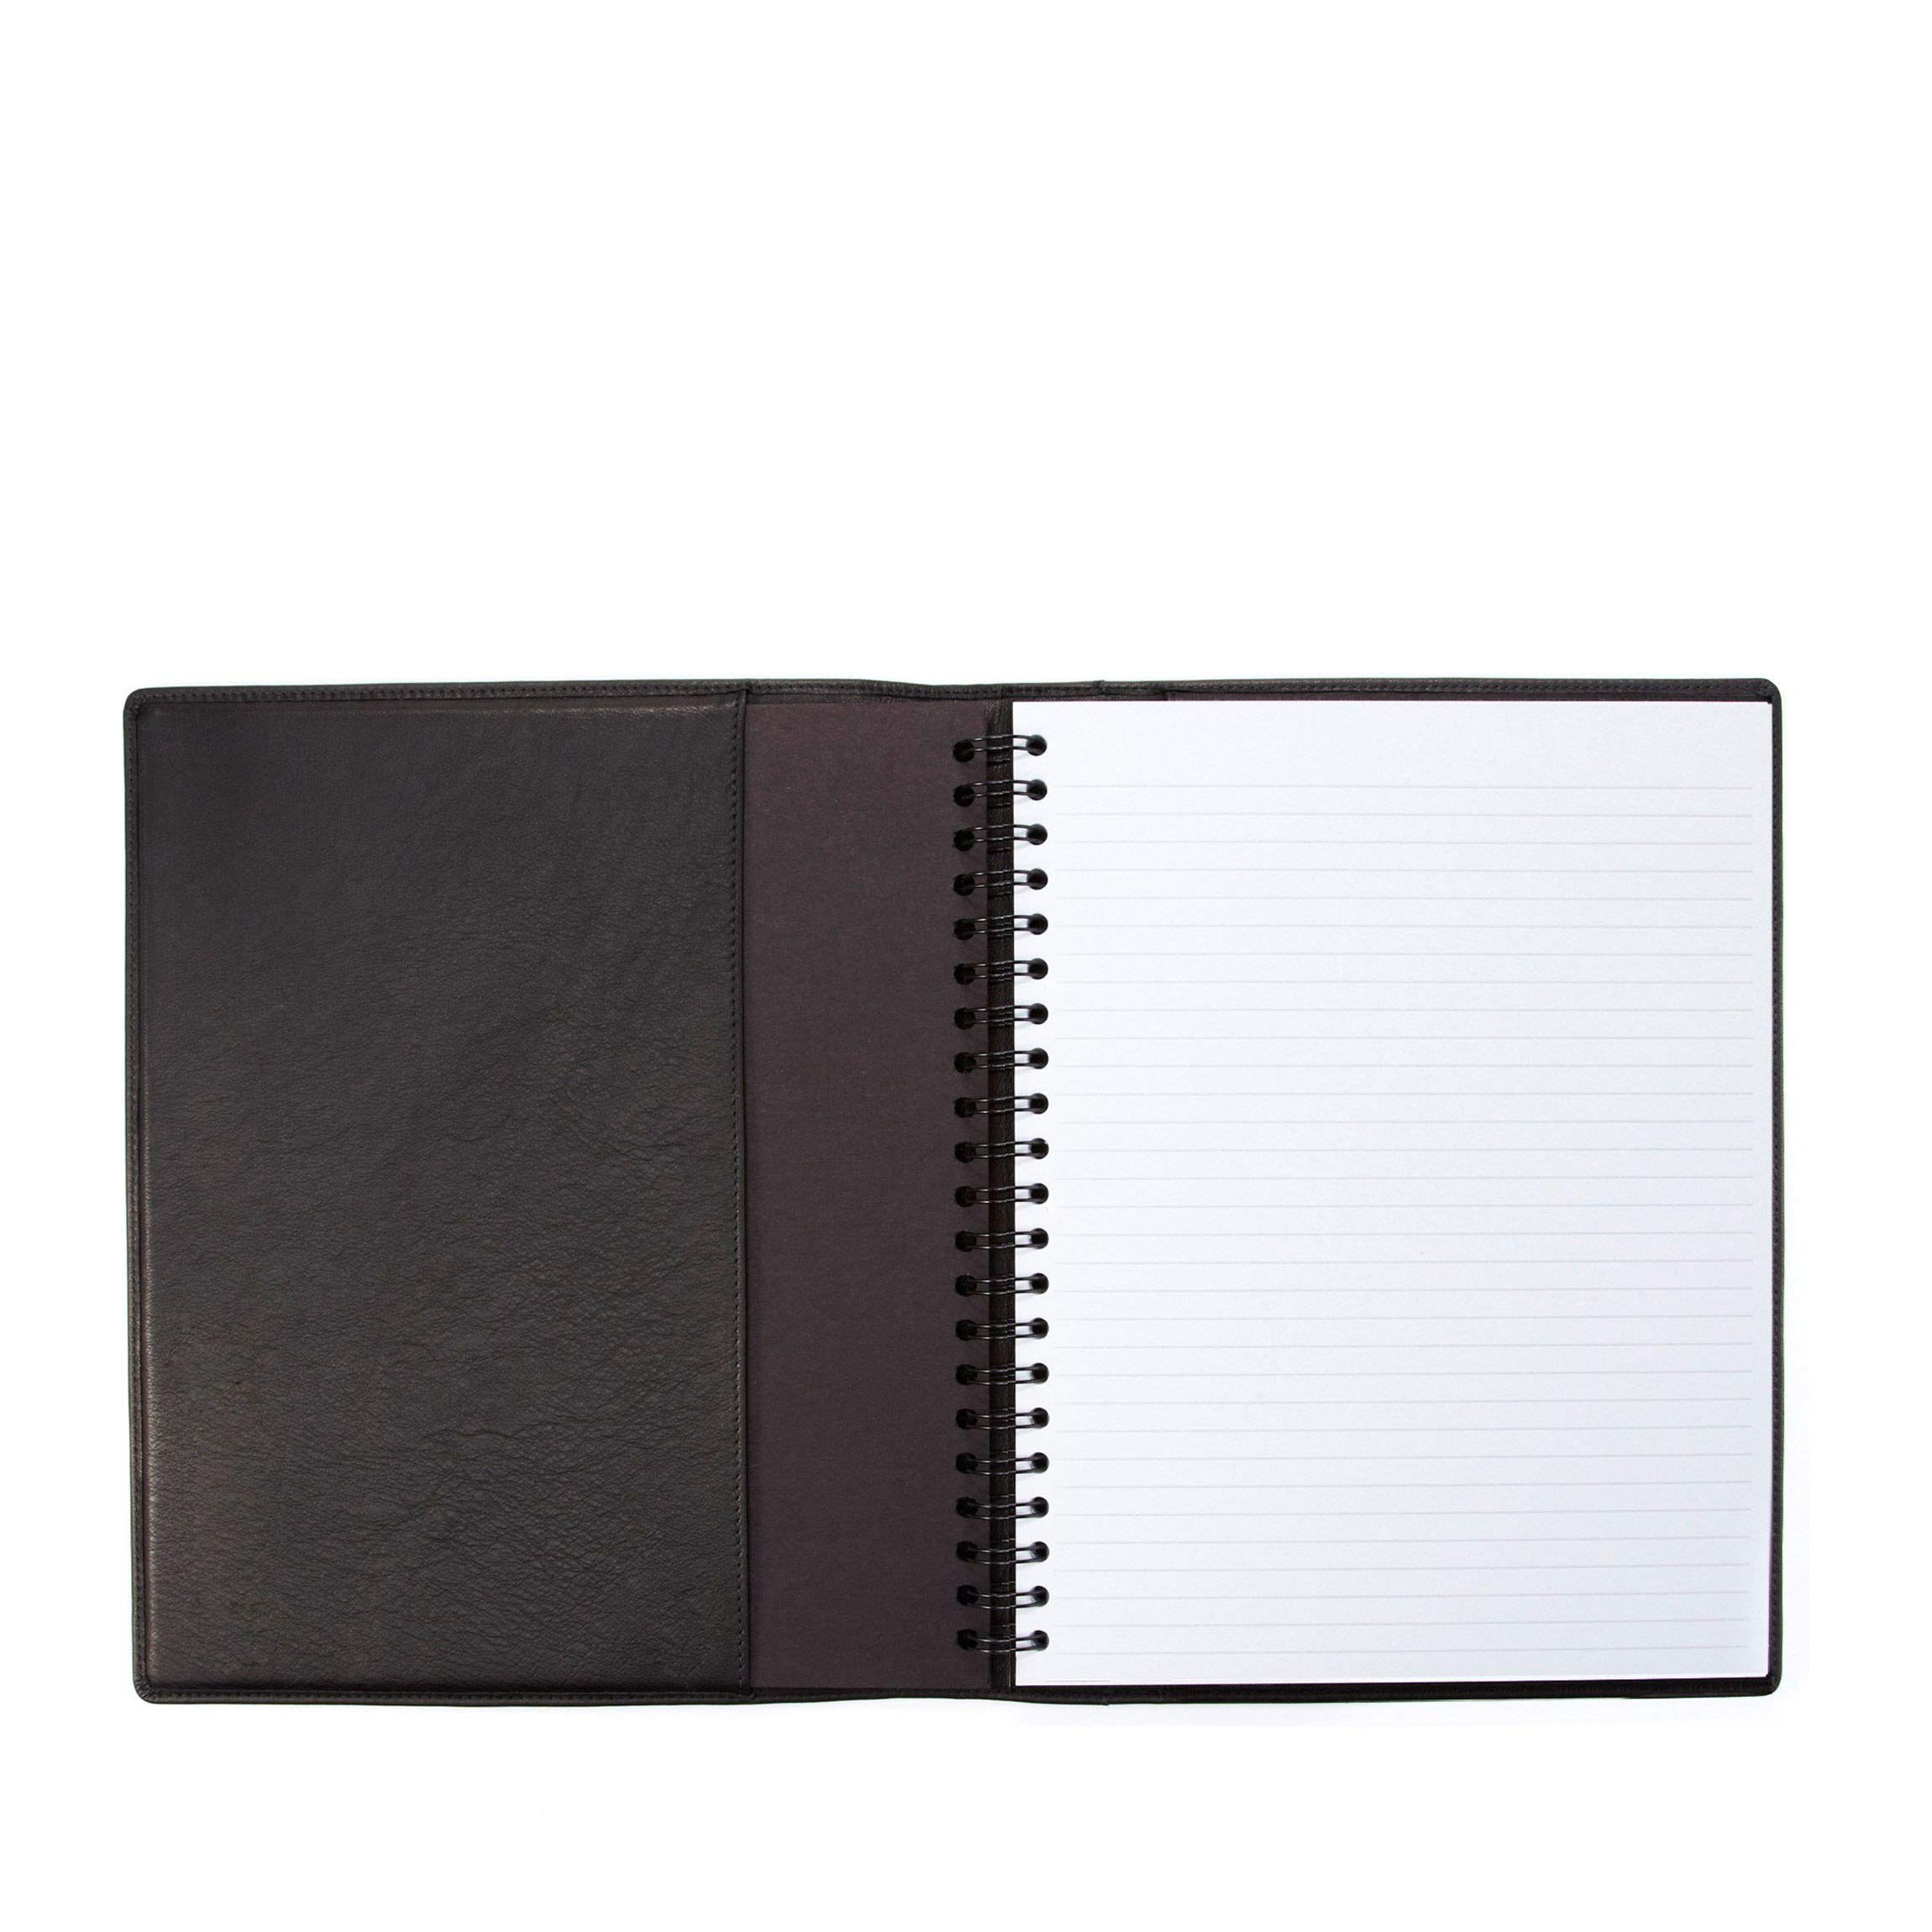 Leatherology Black Onyx Large Notebook by Leatherology